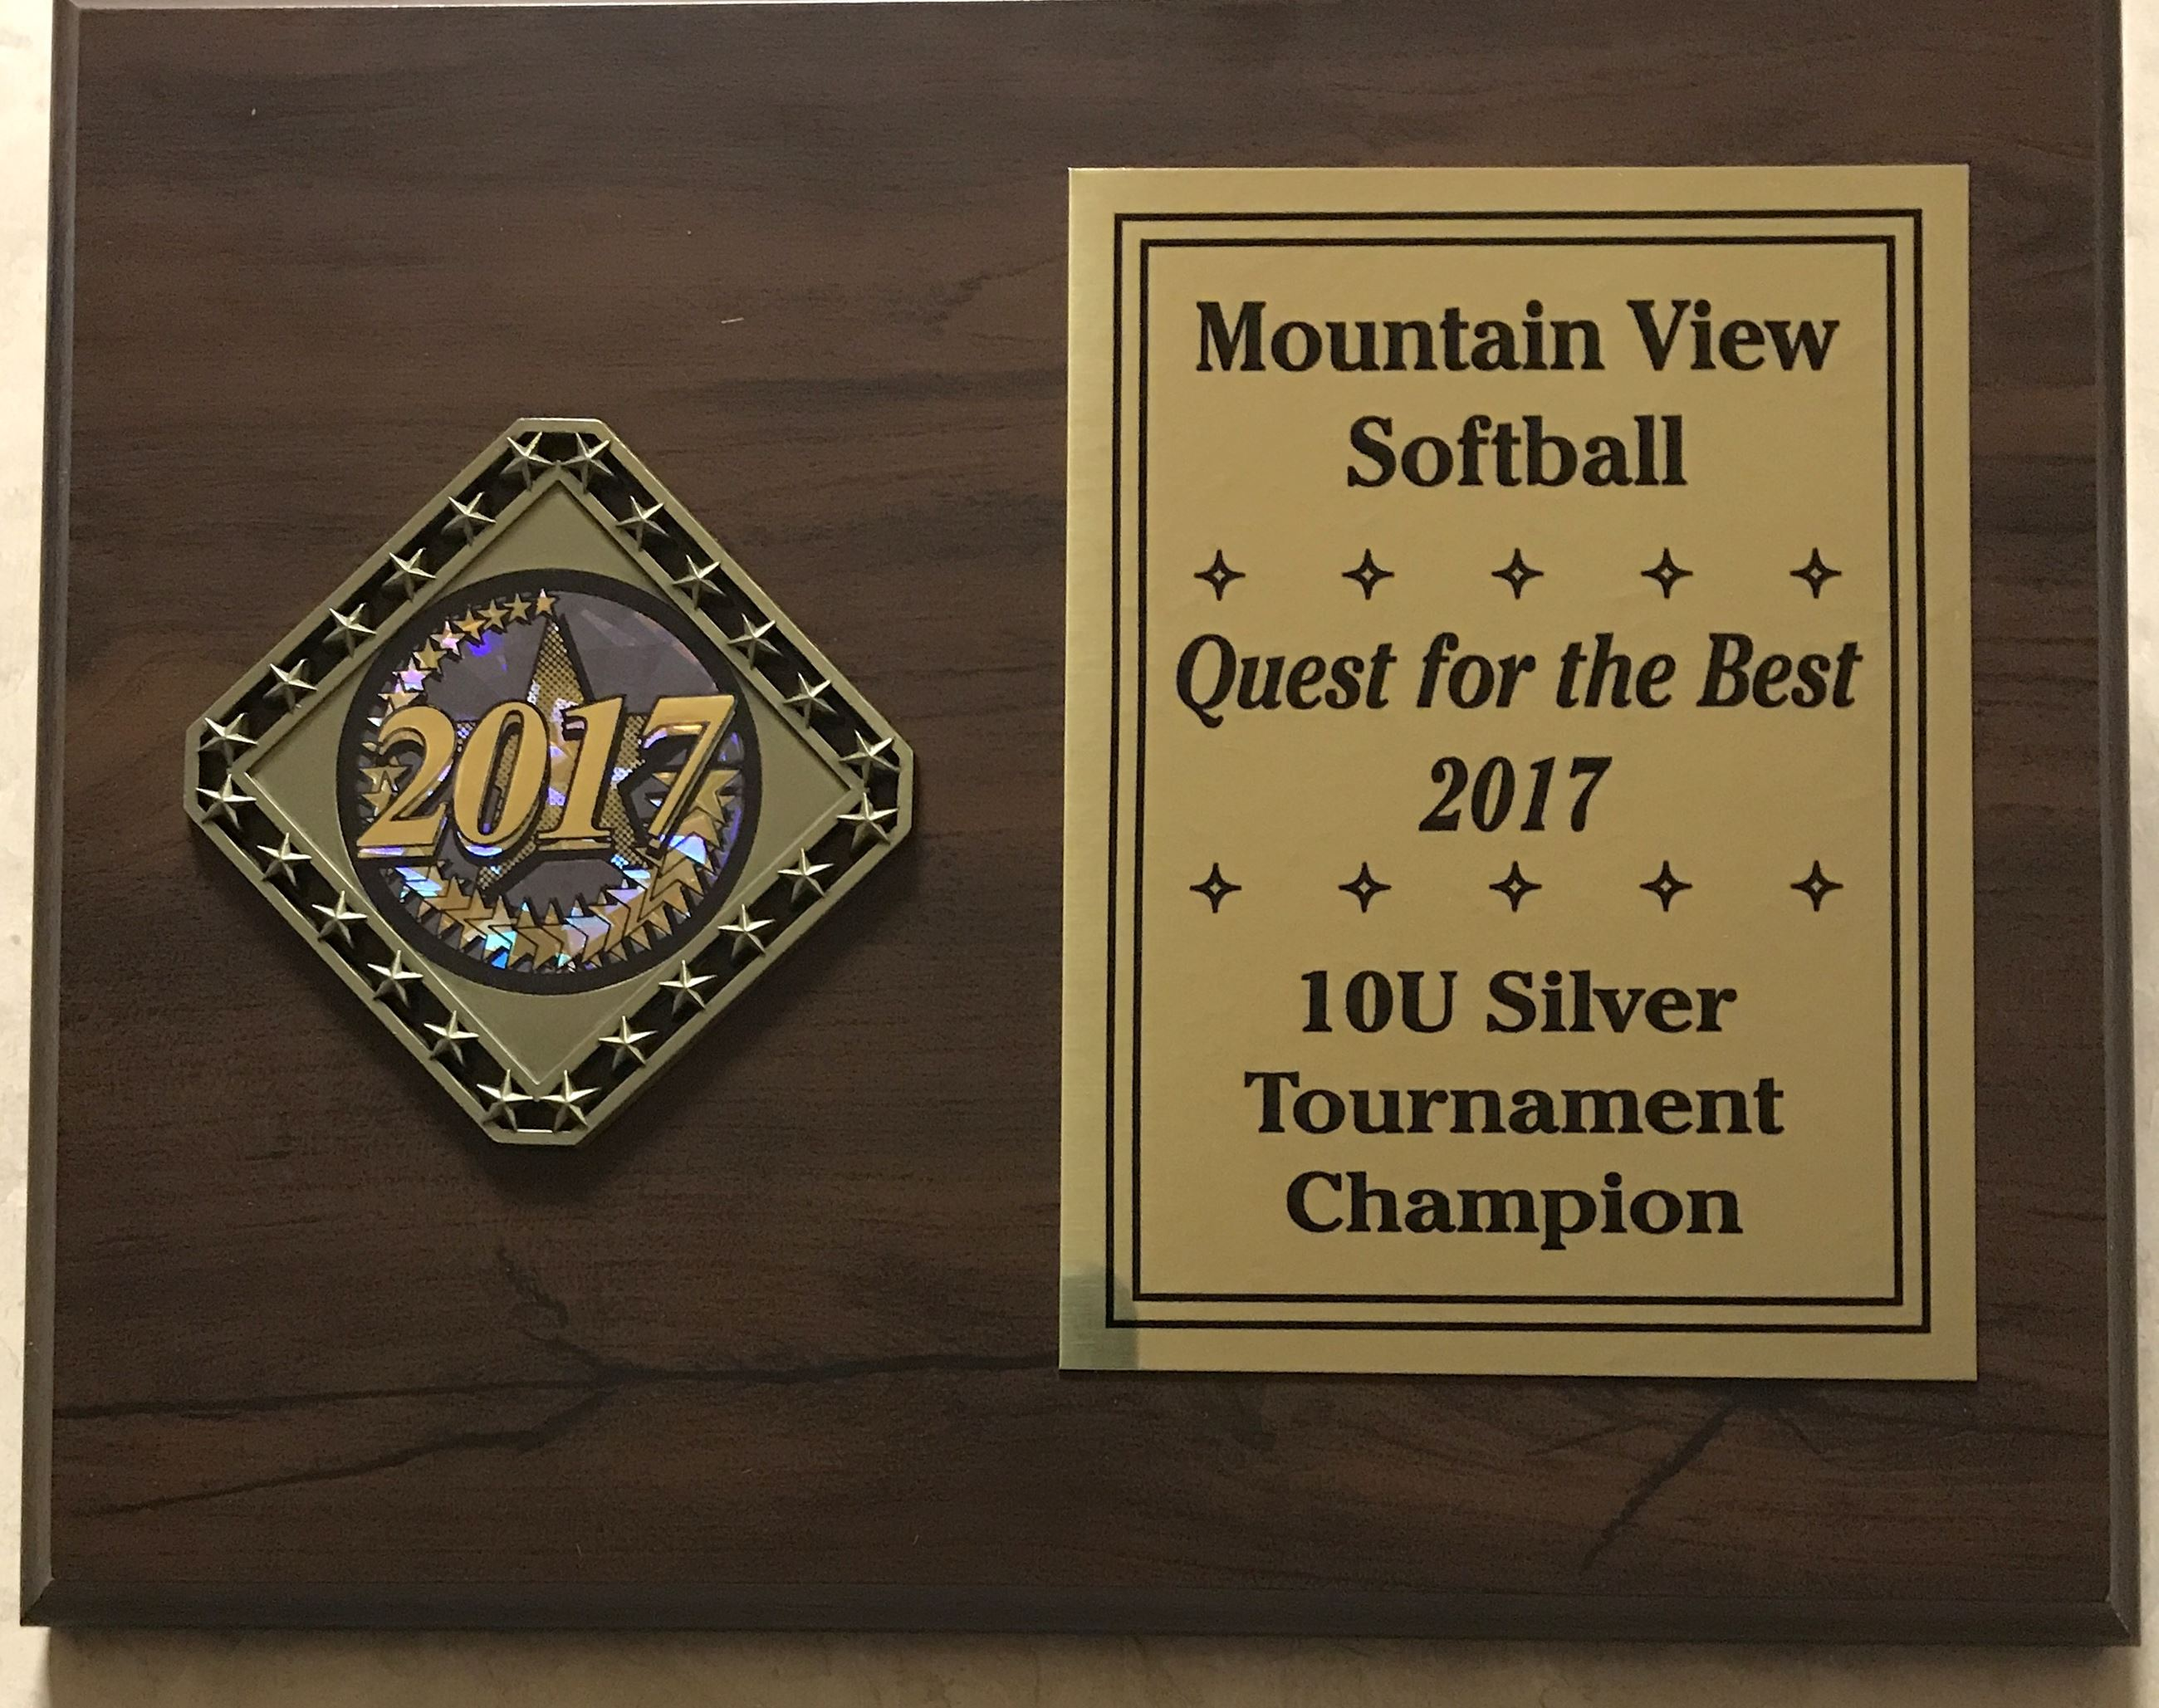 Mountain View Softball Quiest for the Best 2017 10U Tournament Champion Plaque